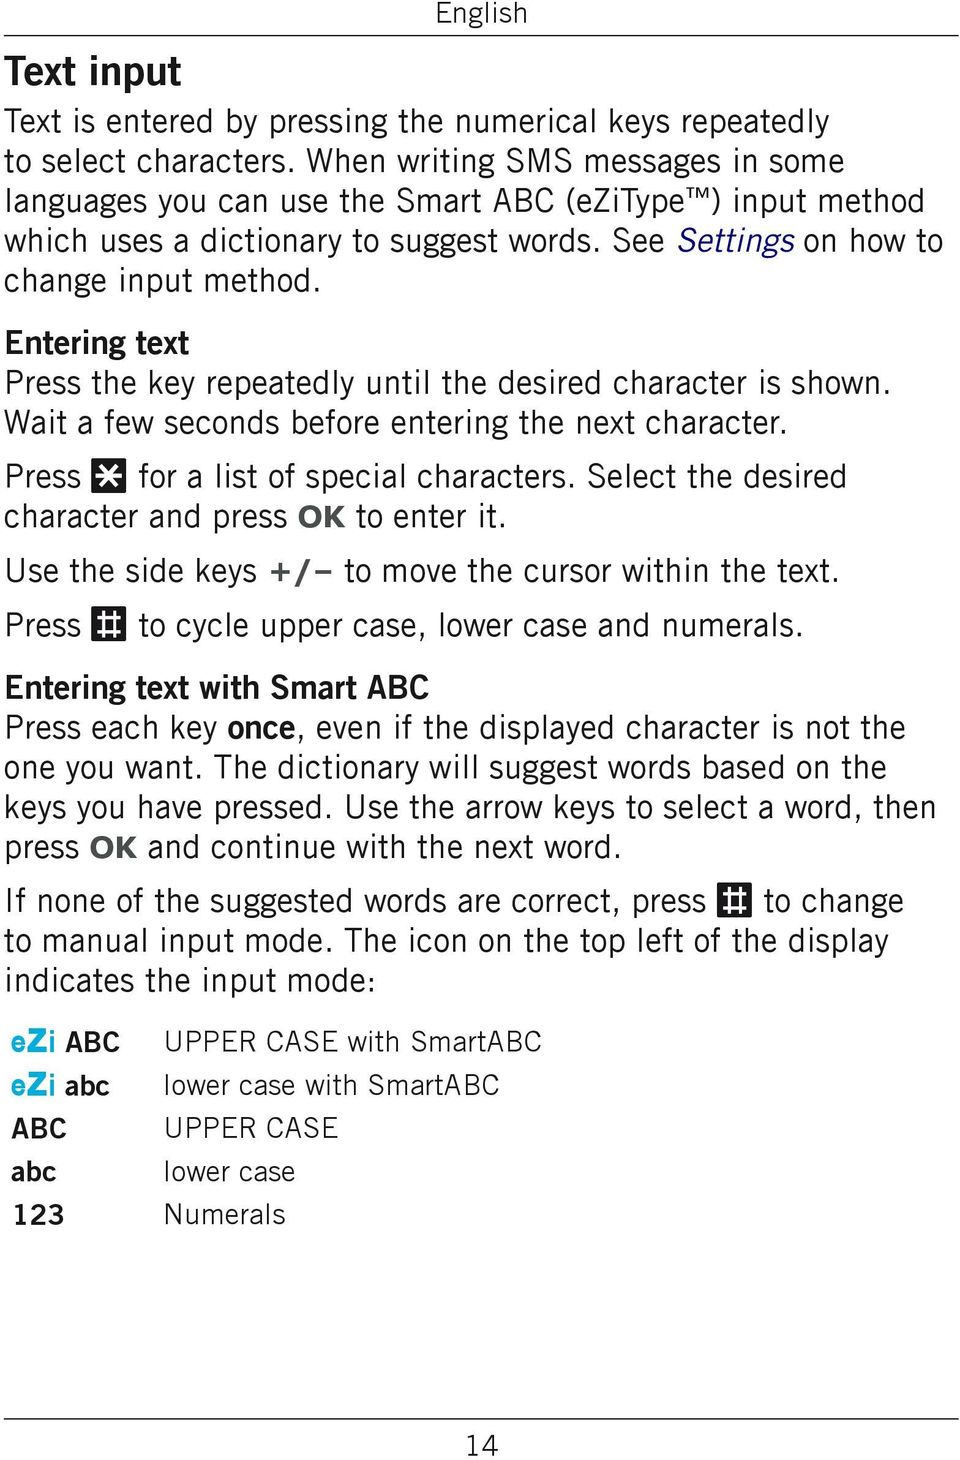 Entering text Press the key repeatedly until the desired character is shown. Wait a few seconds before entering the next character. Press * for a list of special characters.